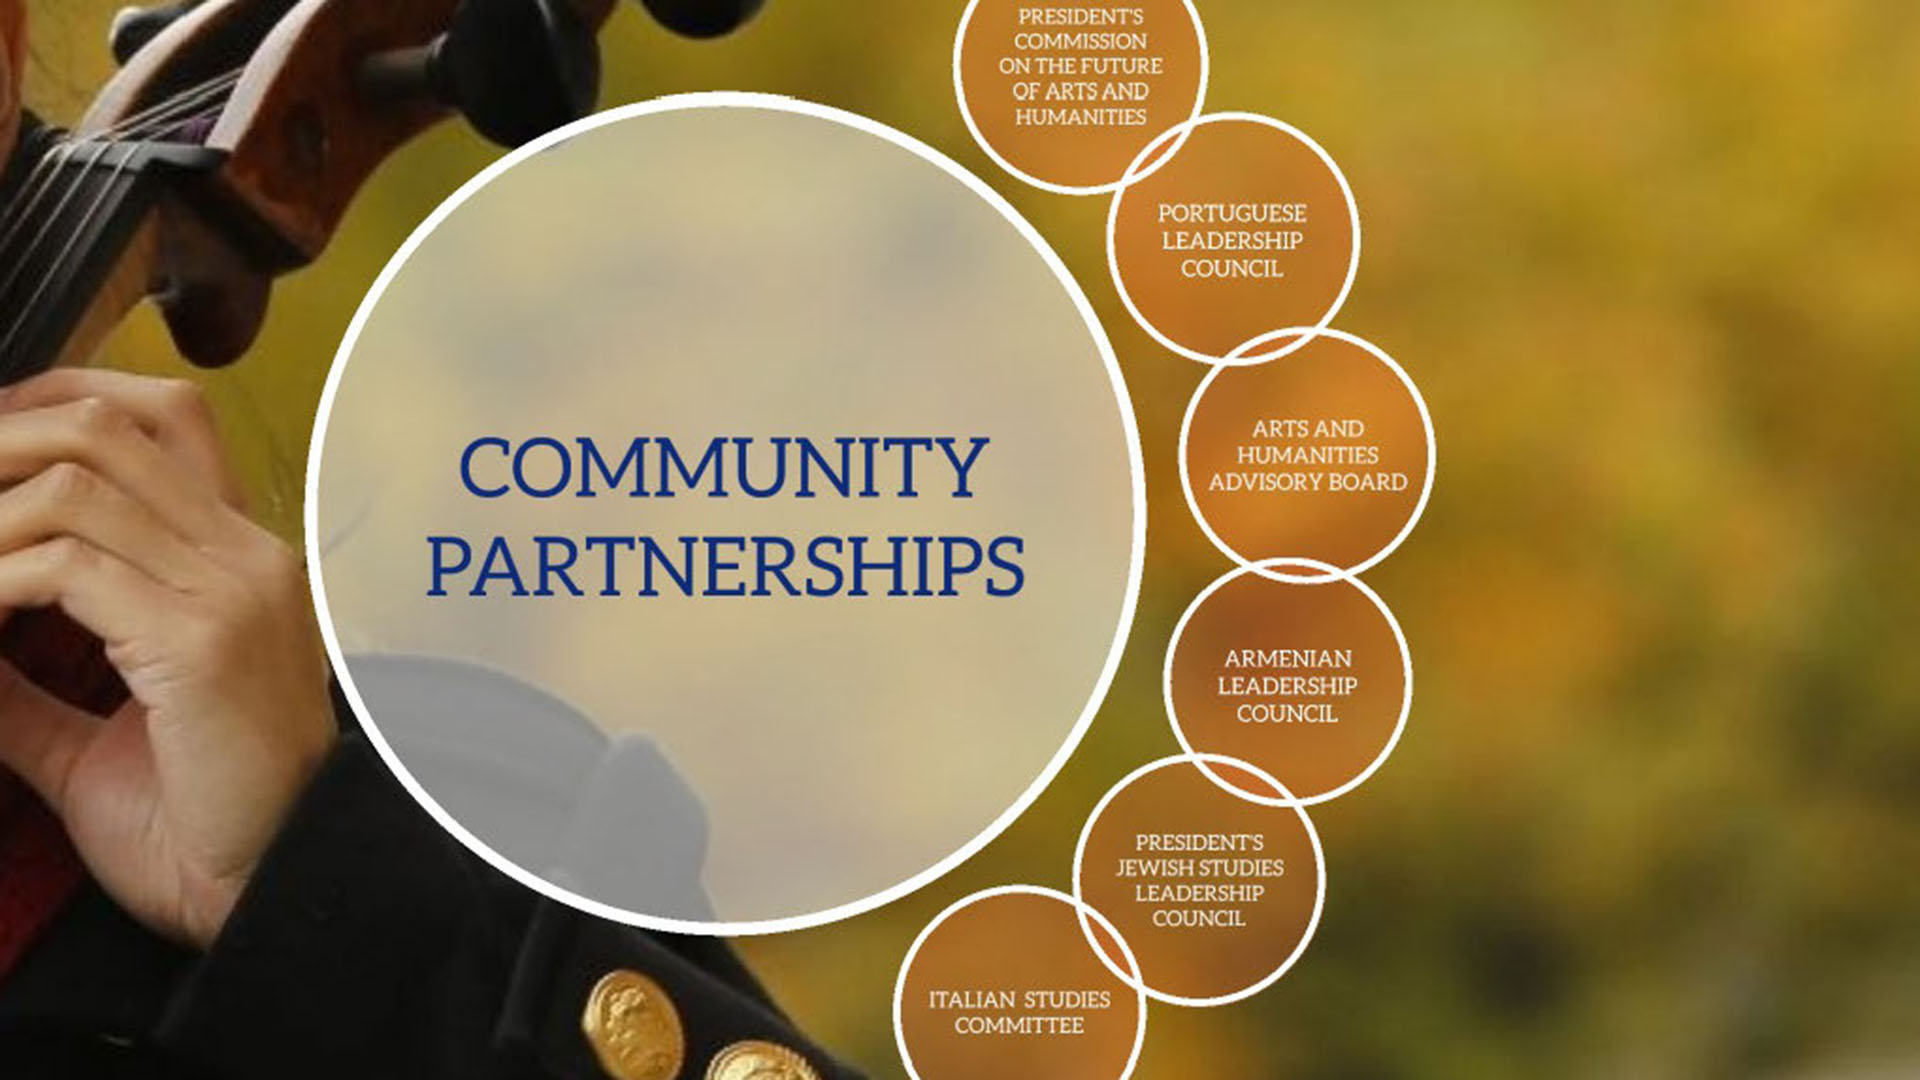 Community Partnerships: President's Commission on the Future of Arts and Humanities, Portuguese Leadership Council, Arts and Humanities Advisory Board, Armenian Leadership Council, President's Jewish Studies Leadership Council, Italian Studies Committee